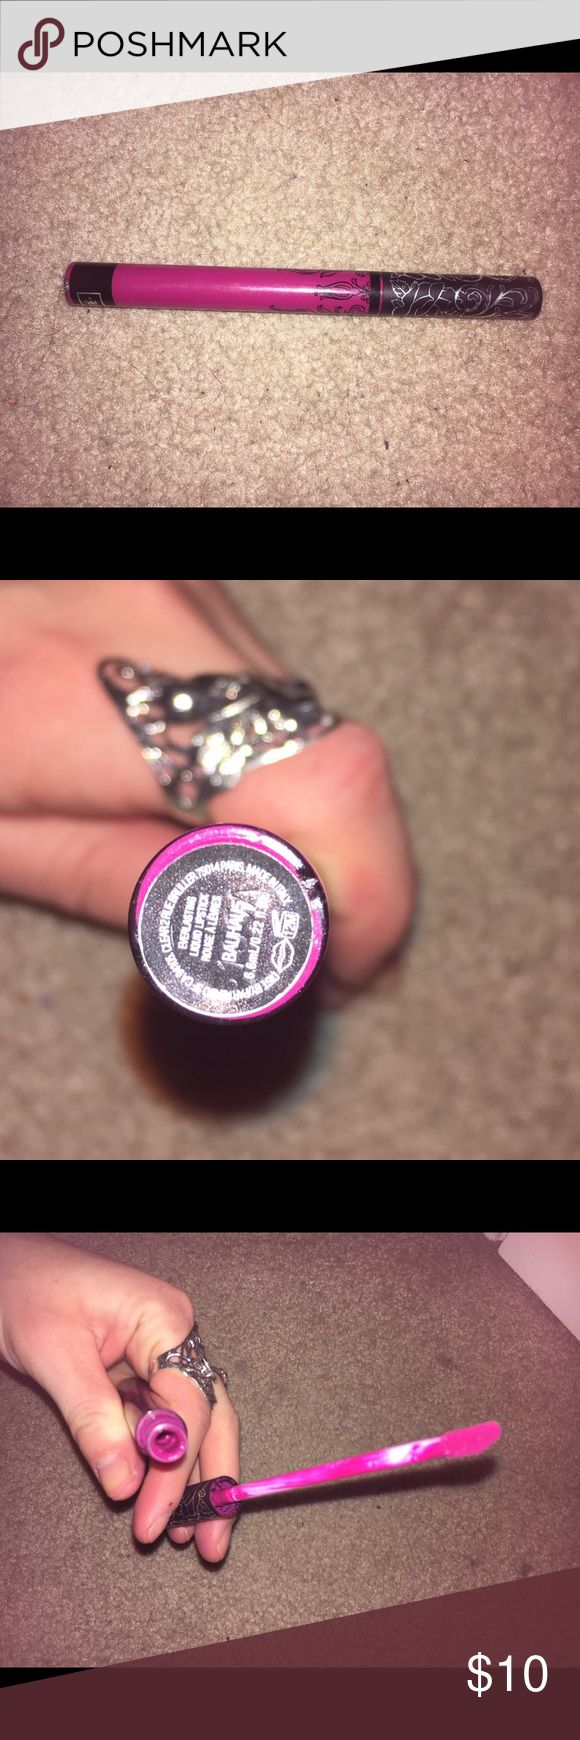 KVD Bauhaus Liquid Lip This color is a really pretty, honestly perfect pink. I haven't worn it in ages, there's definitely a lot of product left! It is authentic, any questions feel free to ask! Kat Von D Makeup Lipstick